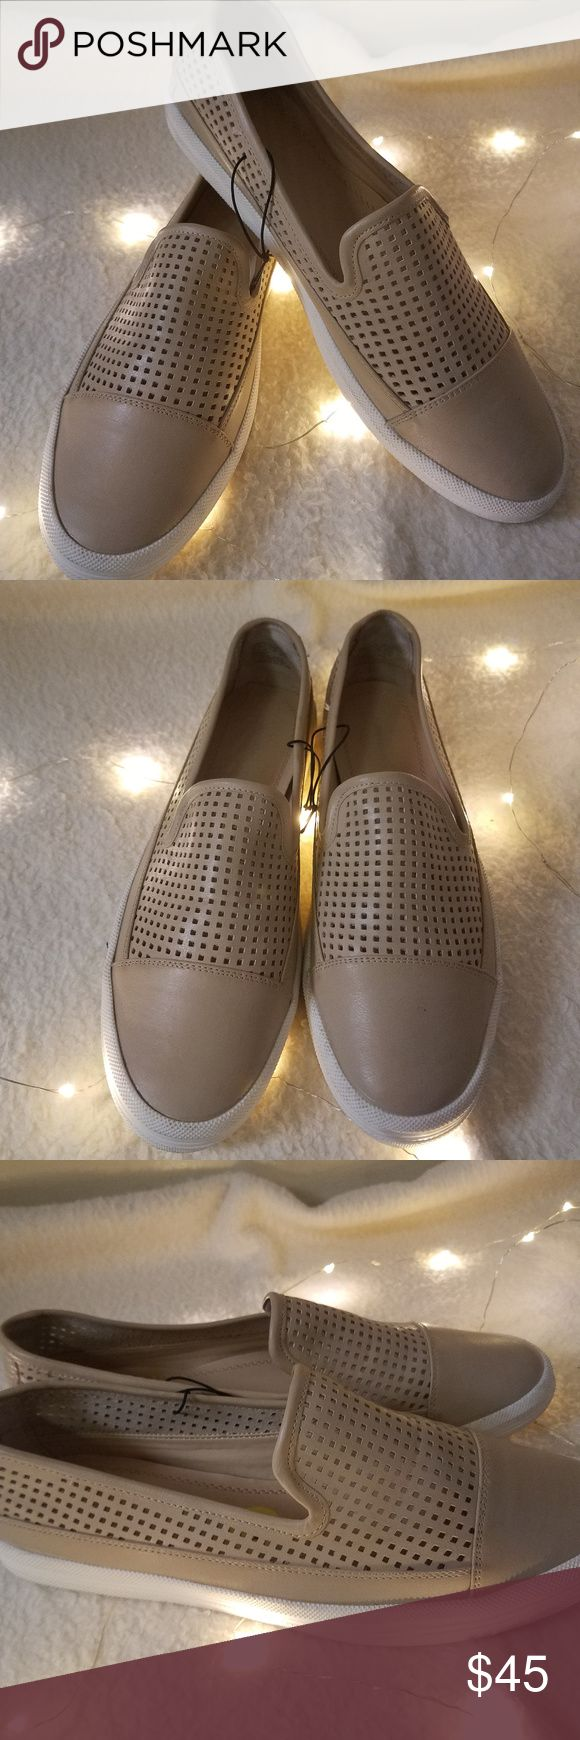 """Calvin Klein Jeans Minerva Slip On Sneakers 9 NWOT Calvin Klein Jeans Minerva Slip On Leather Sneakers Flats Women Beige 9 BrandNew WithOut Tag   Beautiful perforated-design slip on sneakers/flats  Measurements:  Length: 10.75"""" in Width: 3.5"""" in  Thank you for looking!  R-S07 Calvin Klein Jeans Shoes Flats & Loafers"""